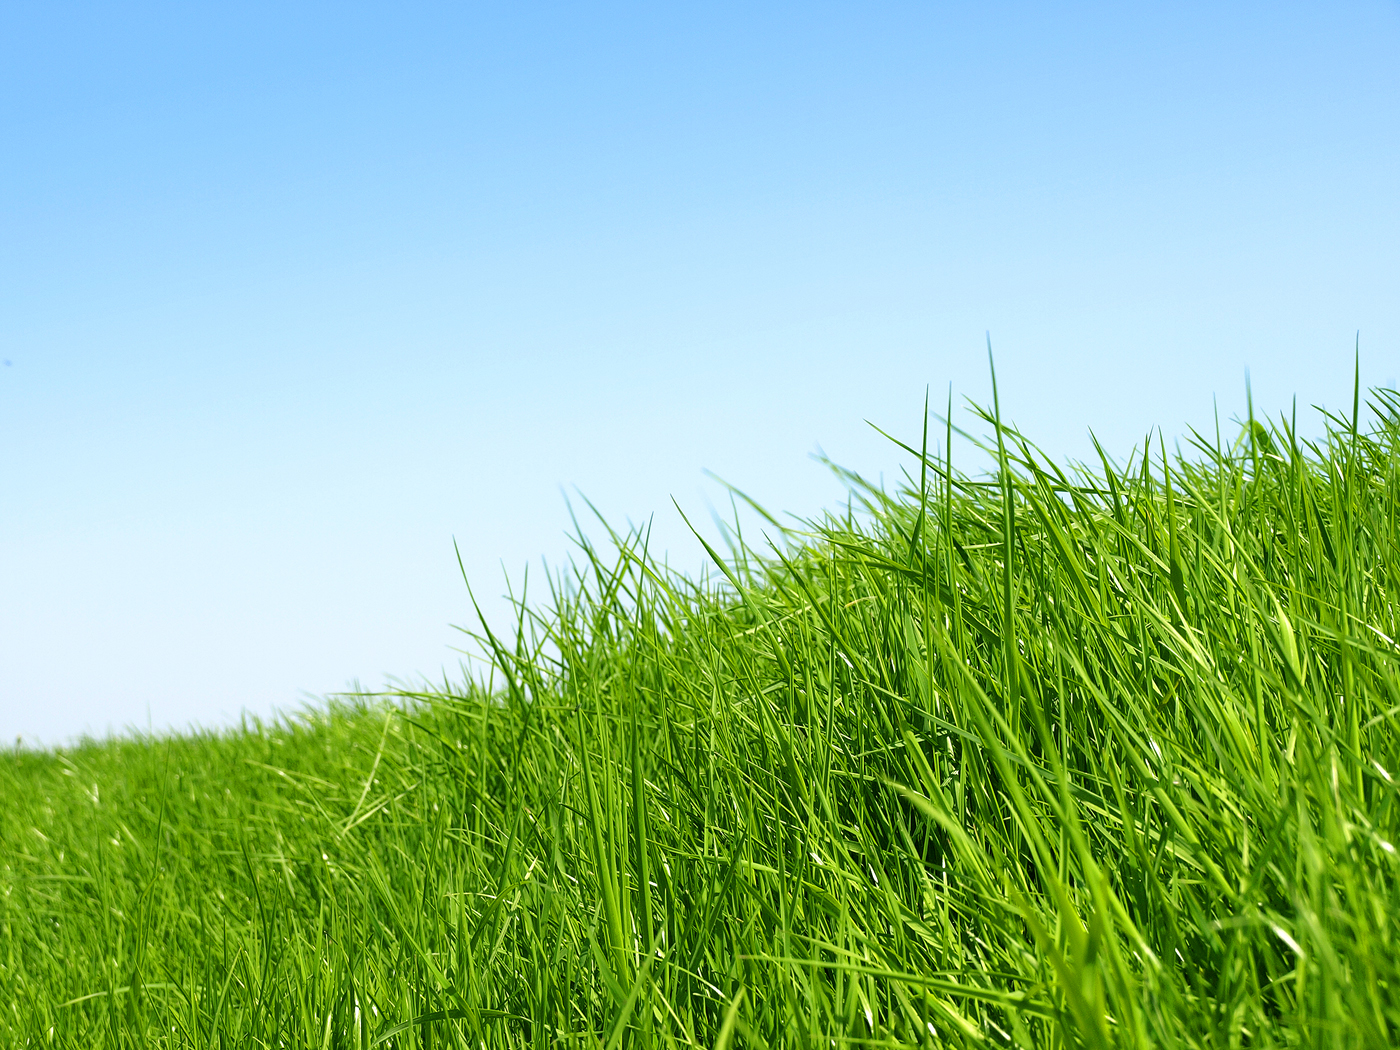 And the in-game grass is much greener than I remember it. I'm sure it's the same, but after that snow it's so bright and vivid. It's more like this: